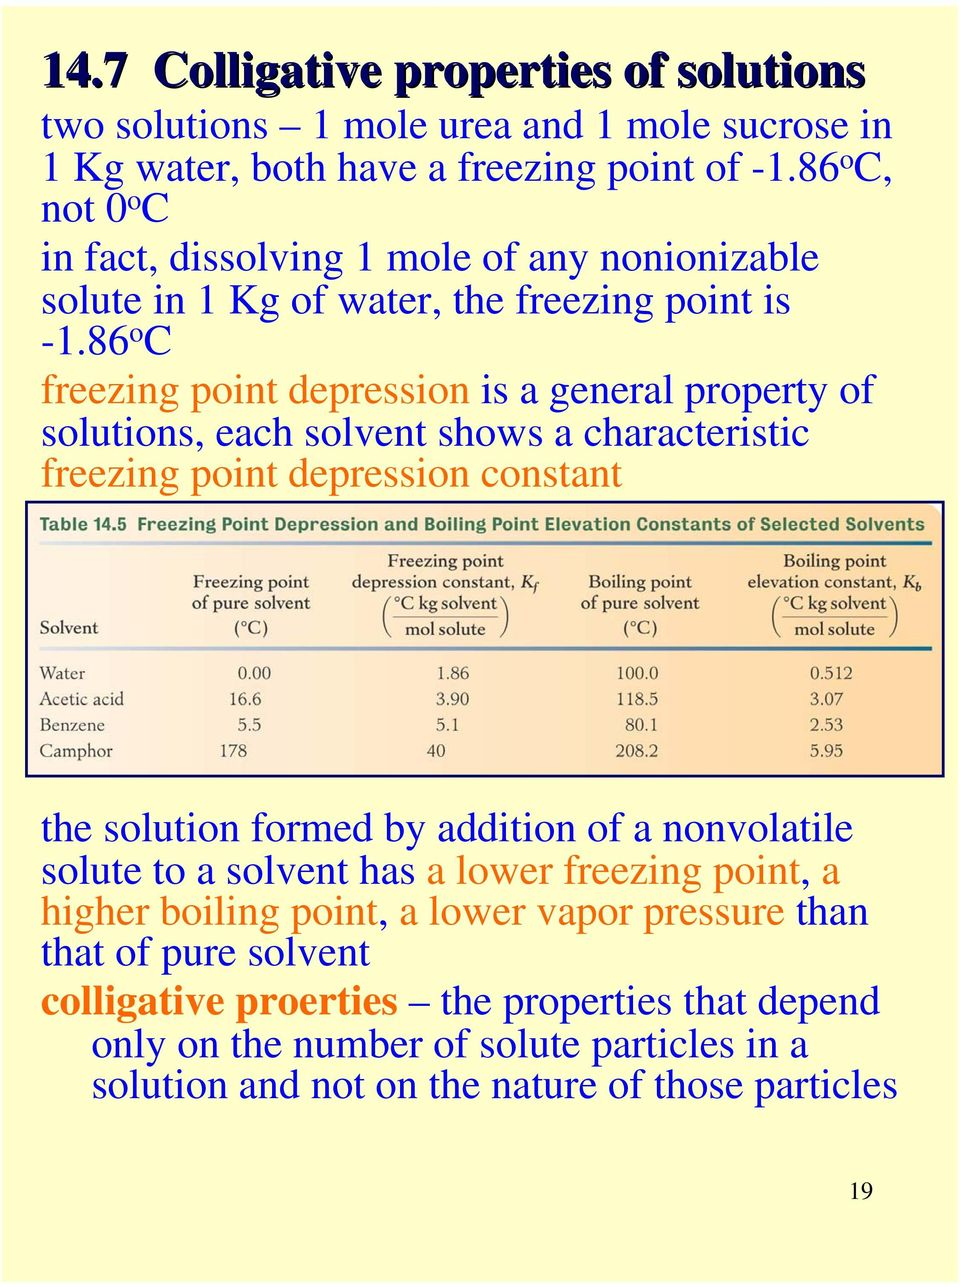 86 o C freezing point depression is a general property of solutions, each solvent shows a characteristic freezing point depression constant the solution formed by addition of